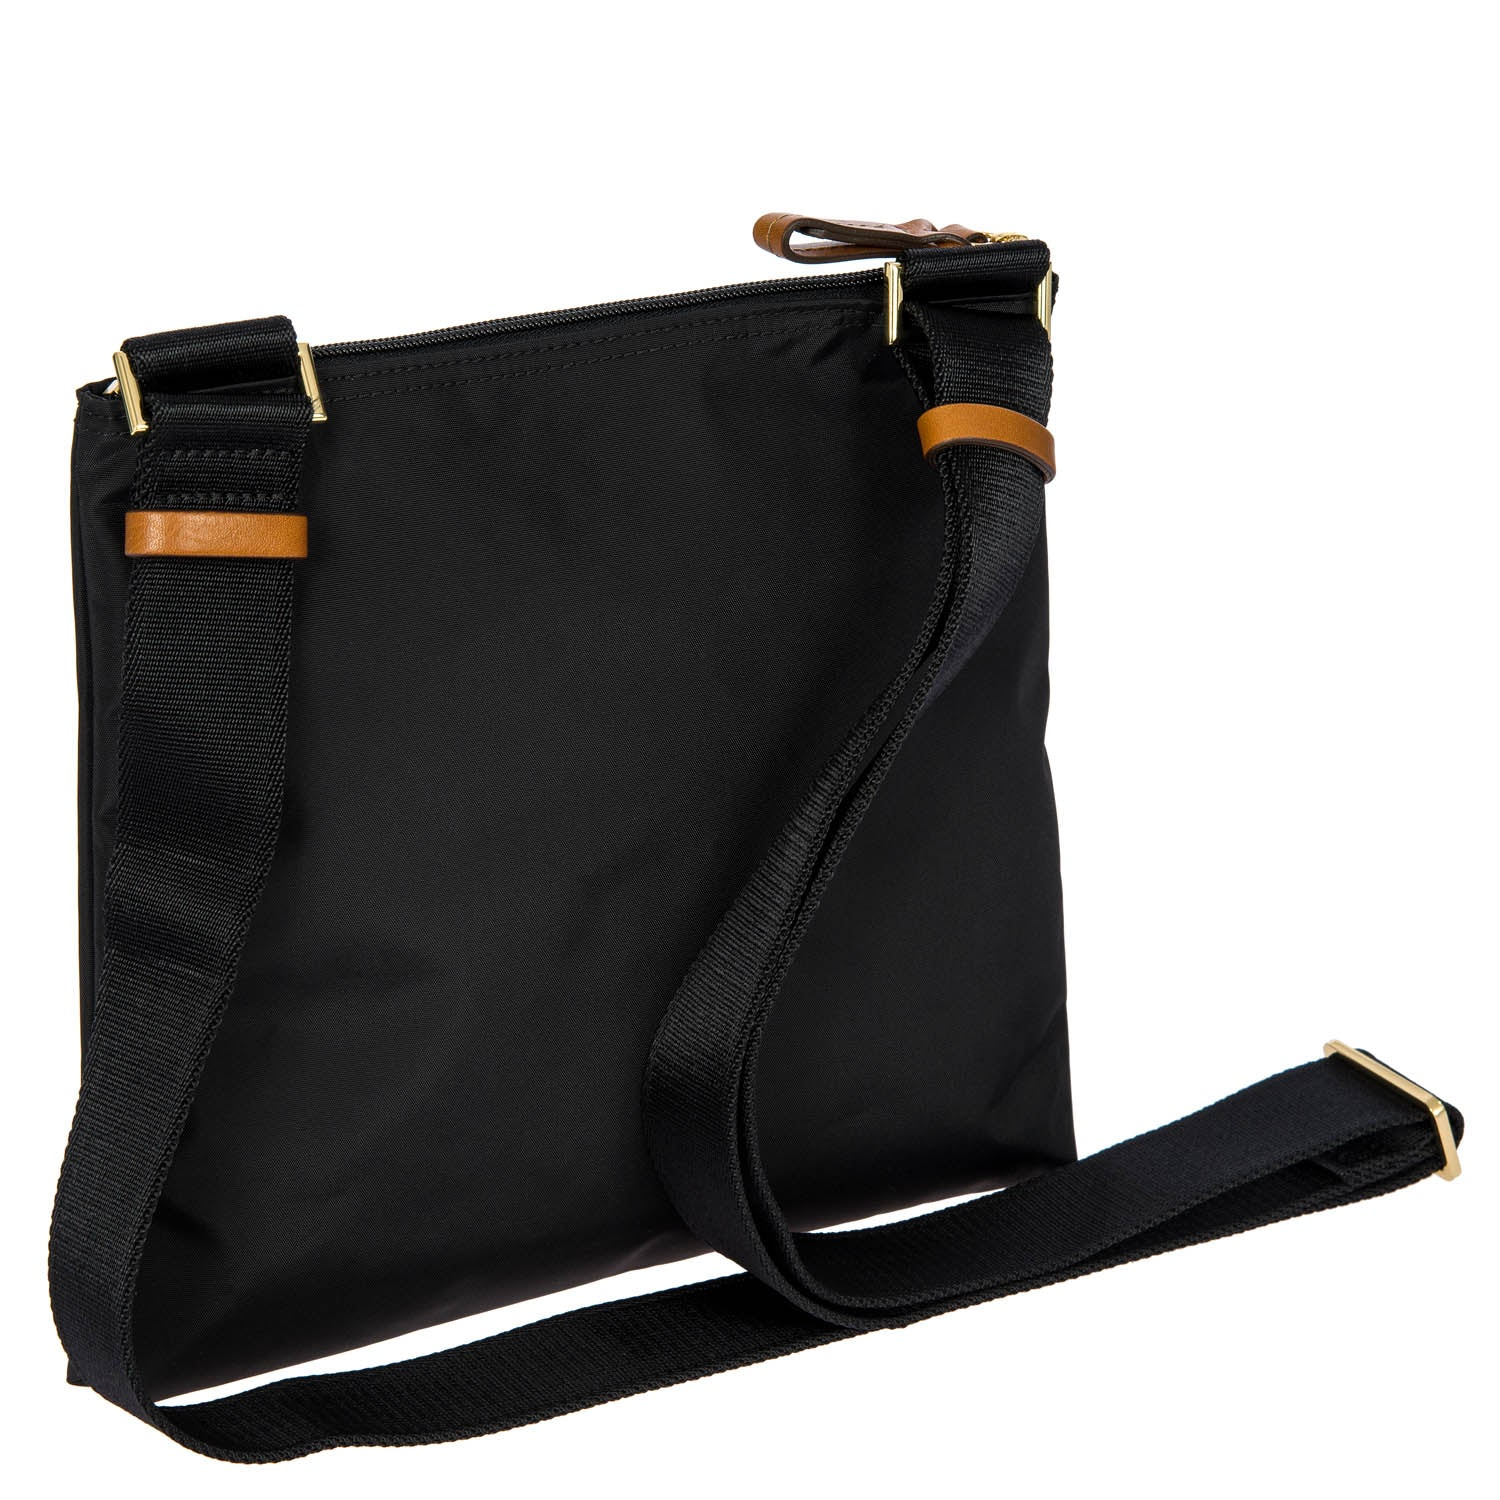 Brics X Bag Cross-Body